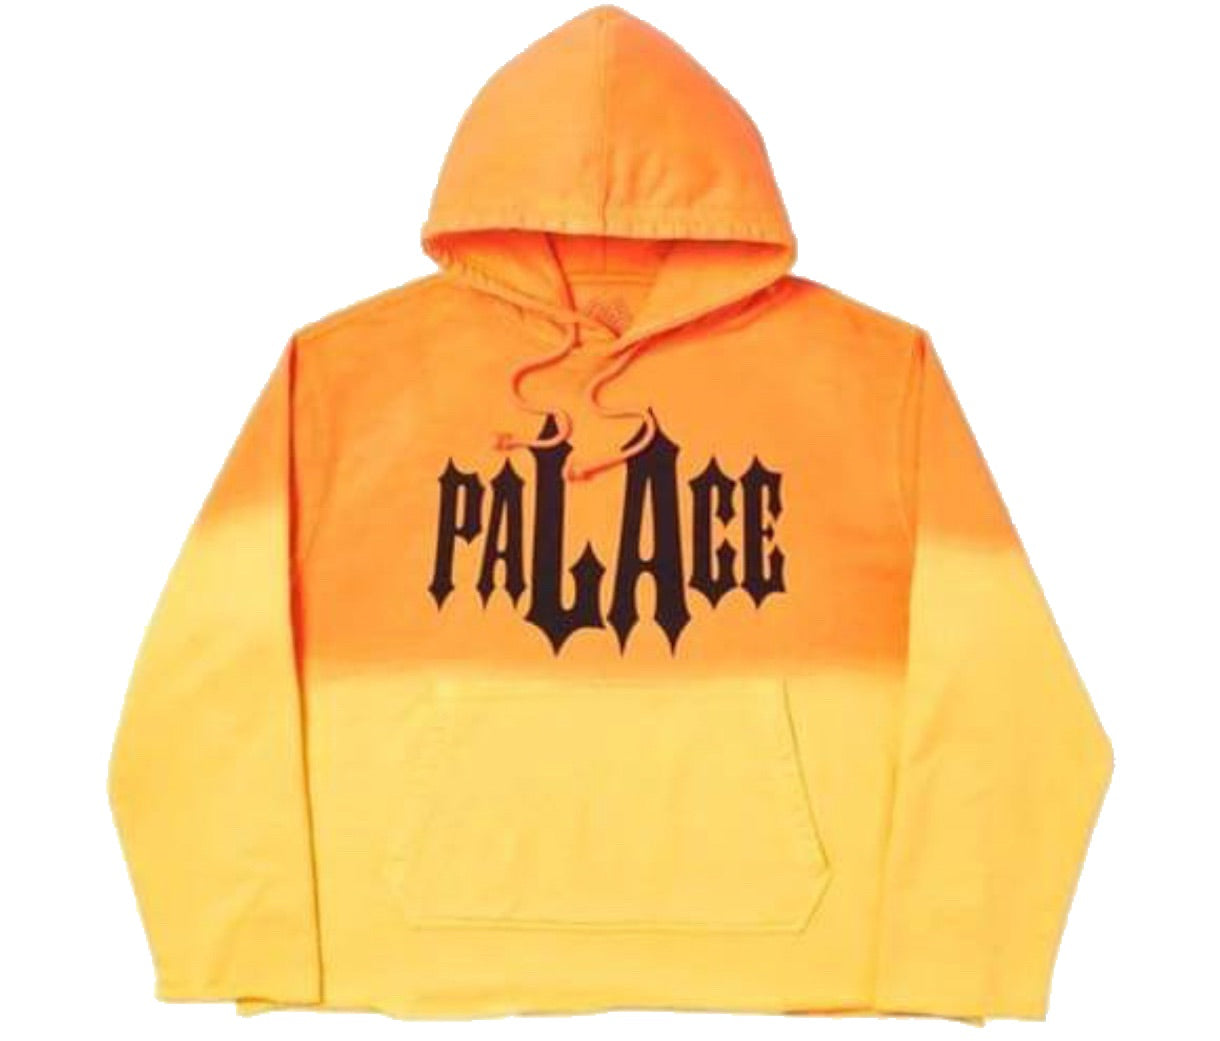 Palace two-toned hoodie